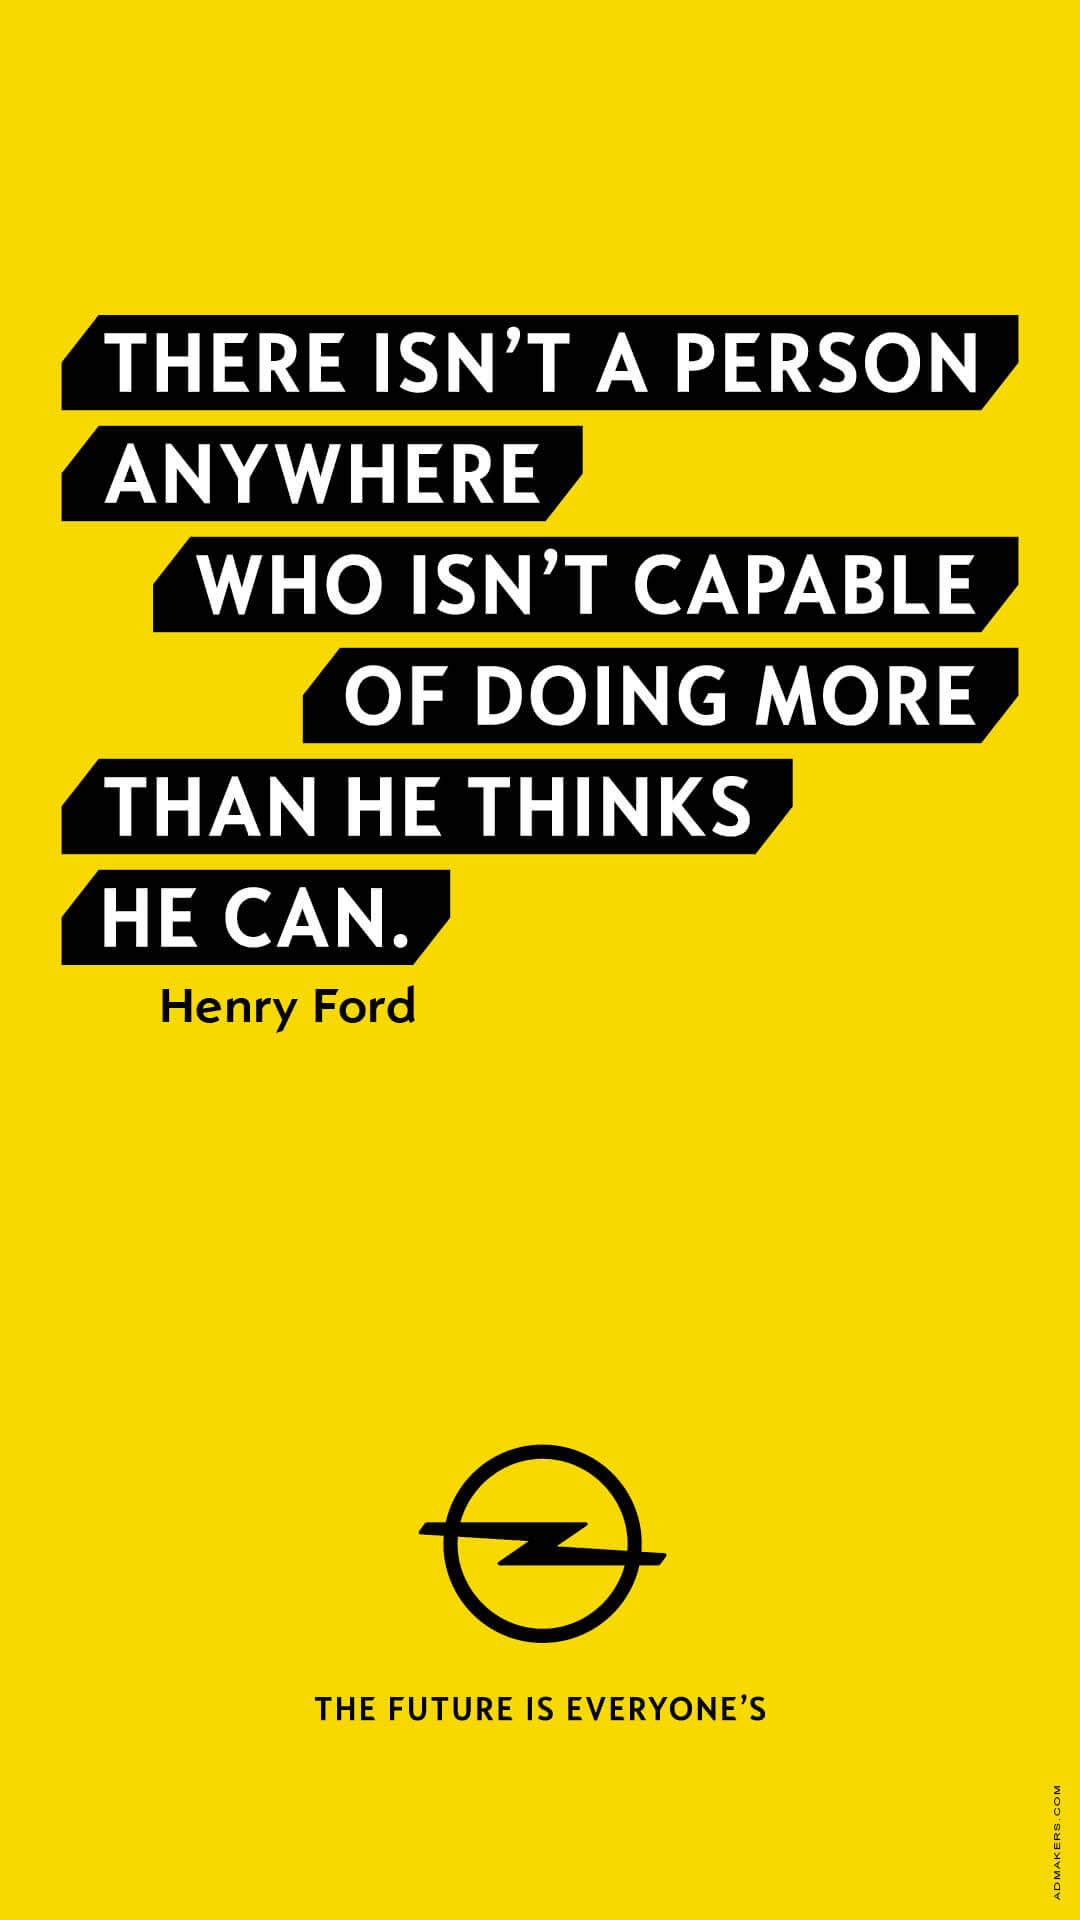 There isn't a person anywhere who isn't capable of doing more than he thinks he can.